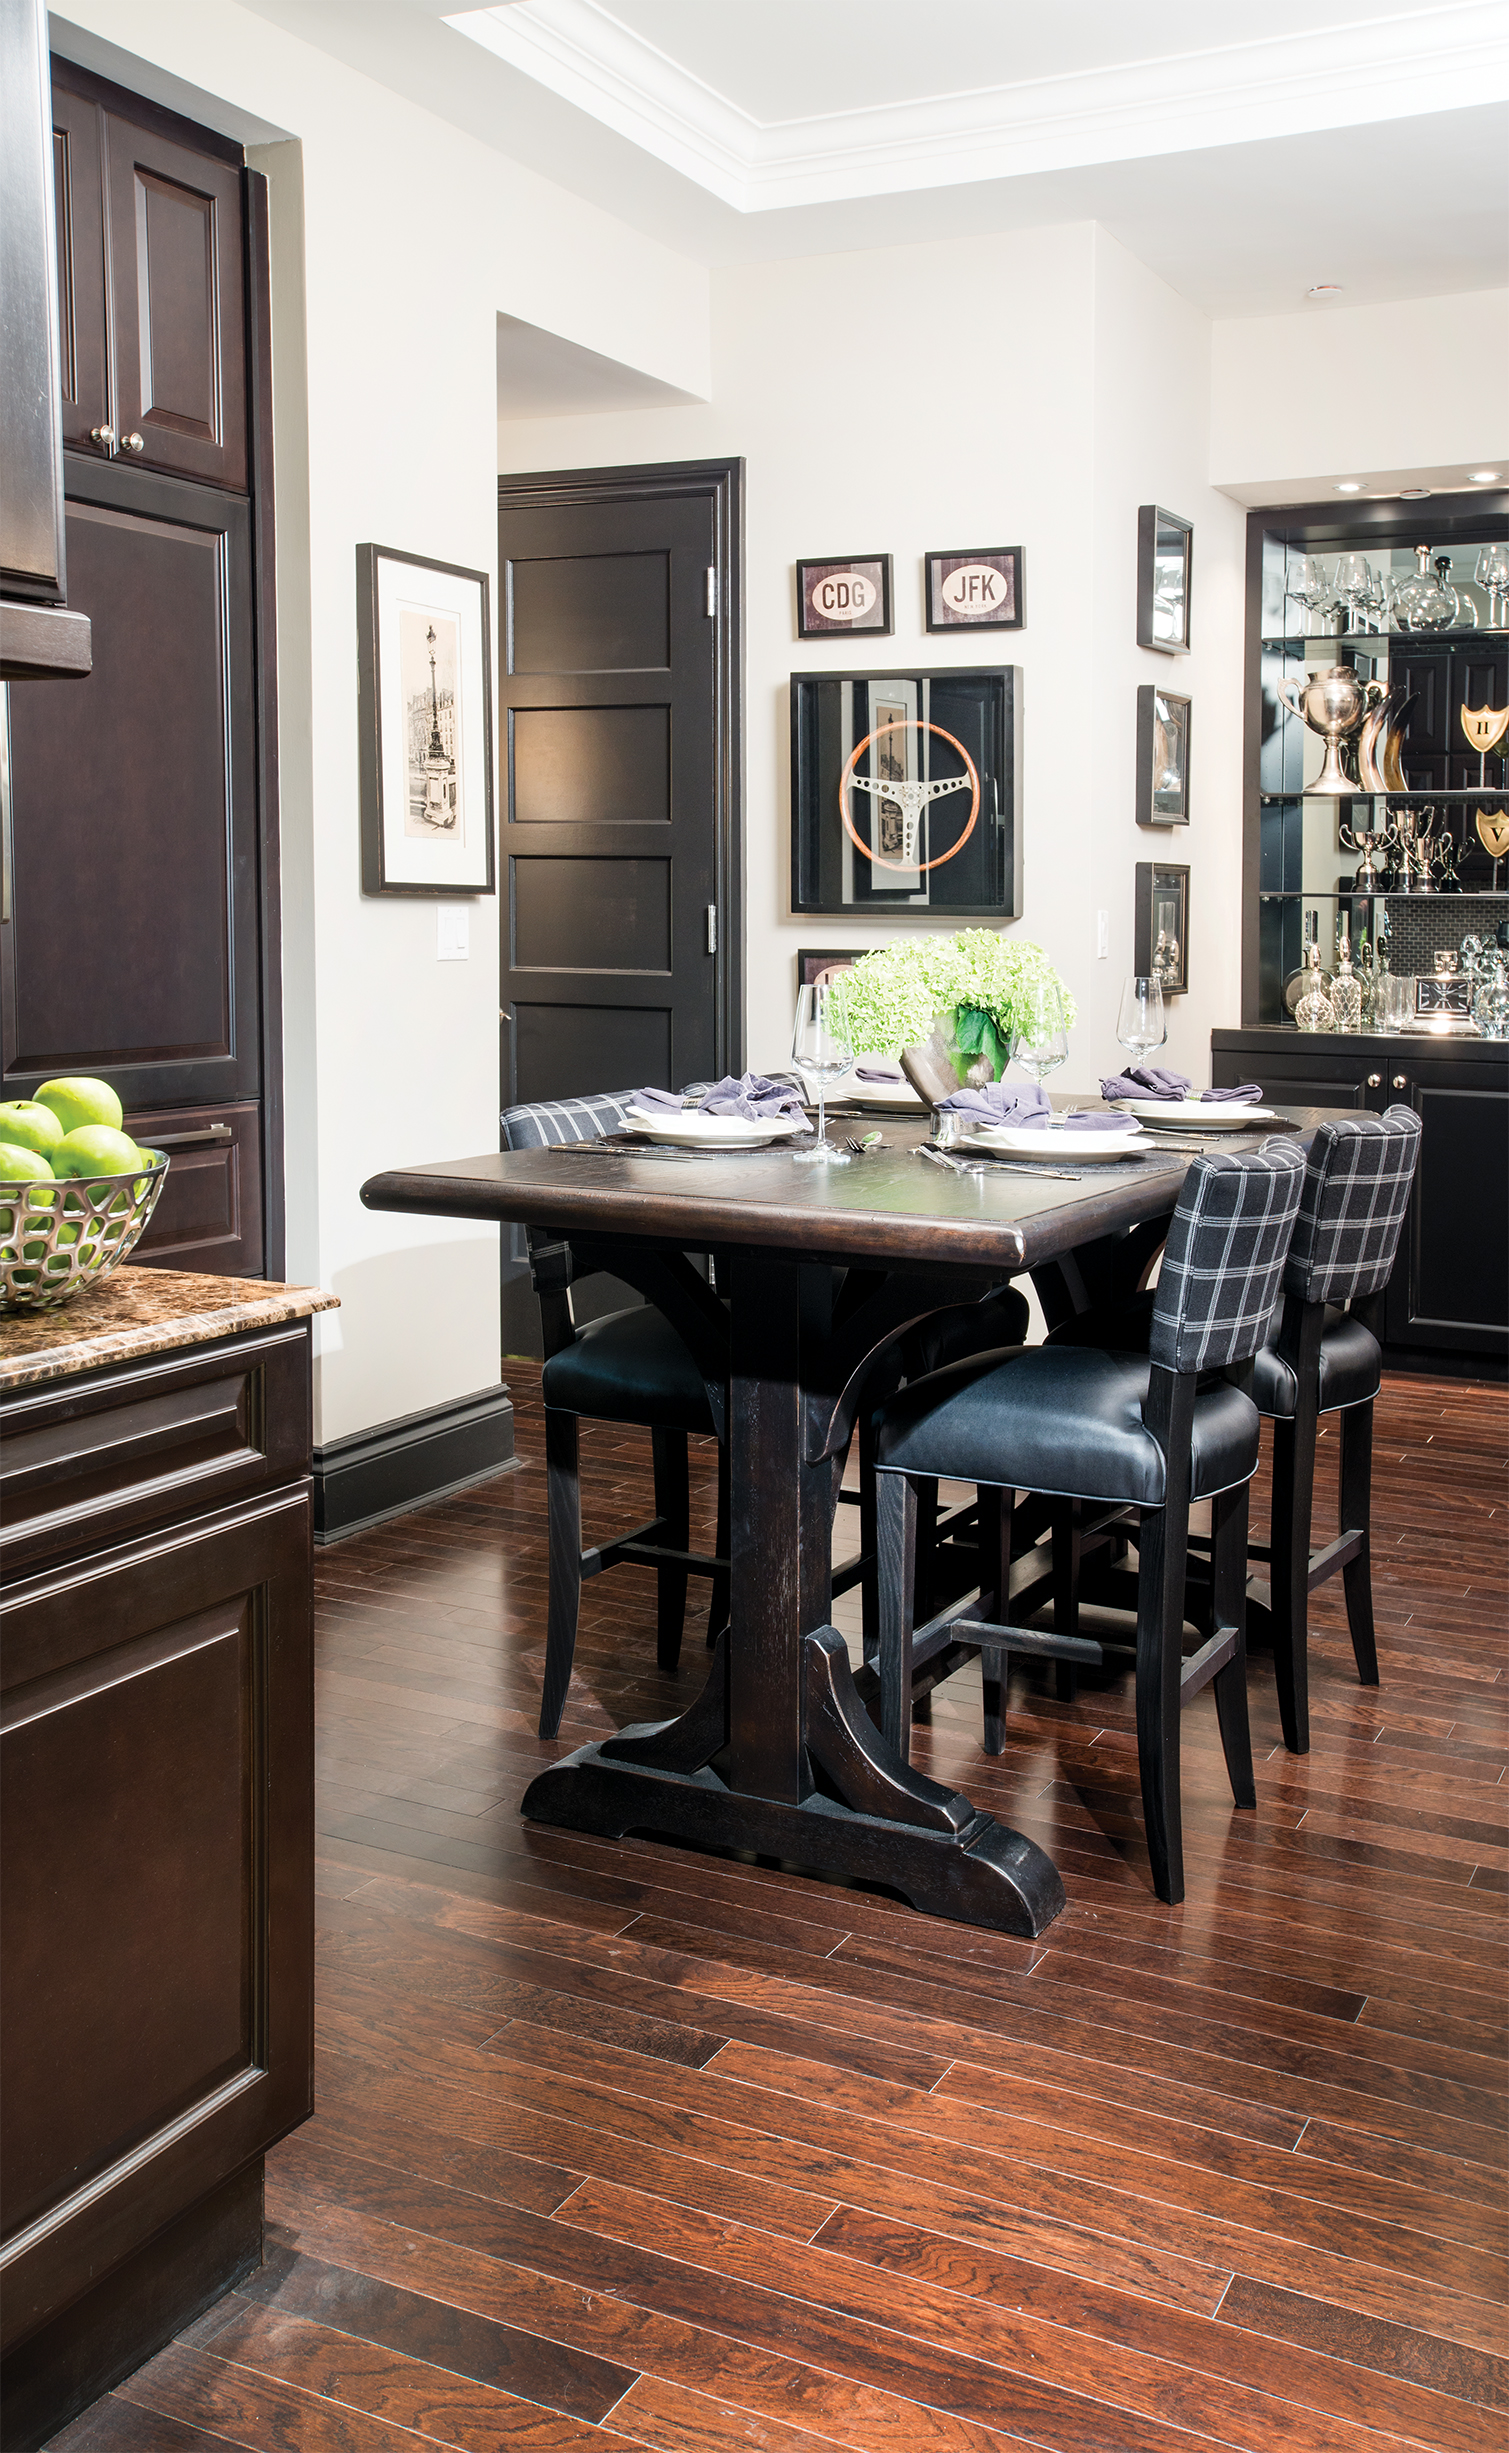 A kitchen area meant for mingling.